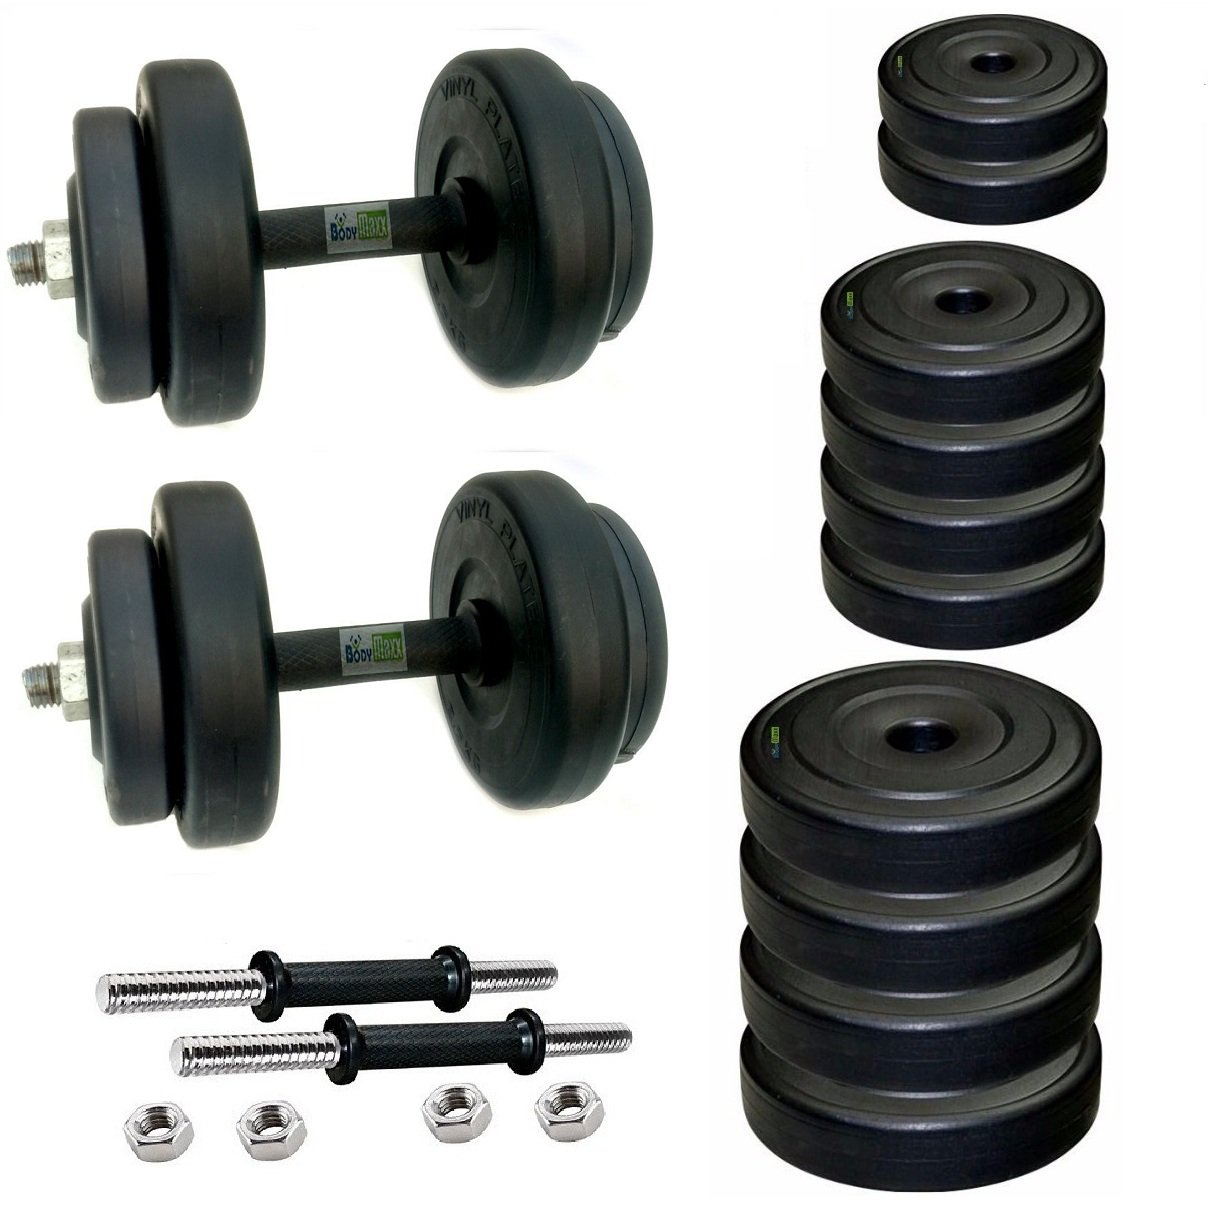 ca875225812 Dumbbells  Buy Dumbbells Online at Best Prices in India-Amazon.in